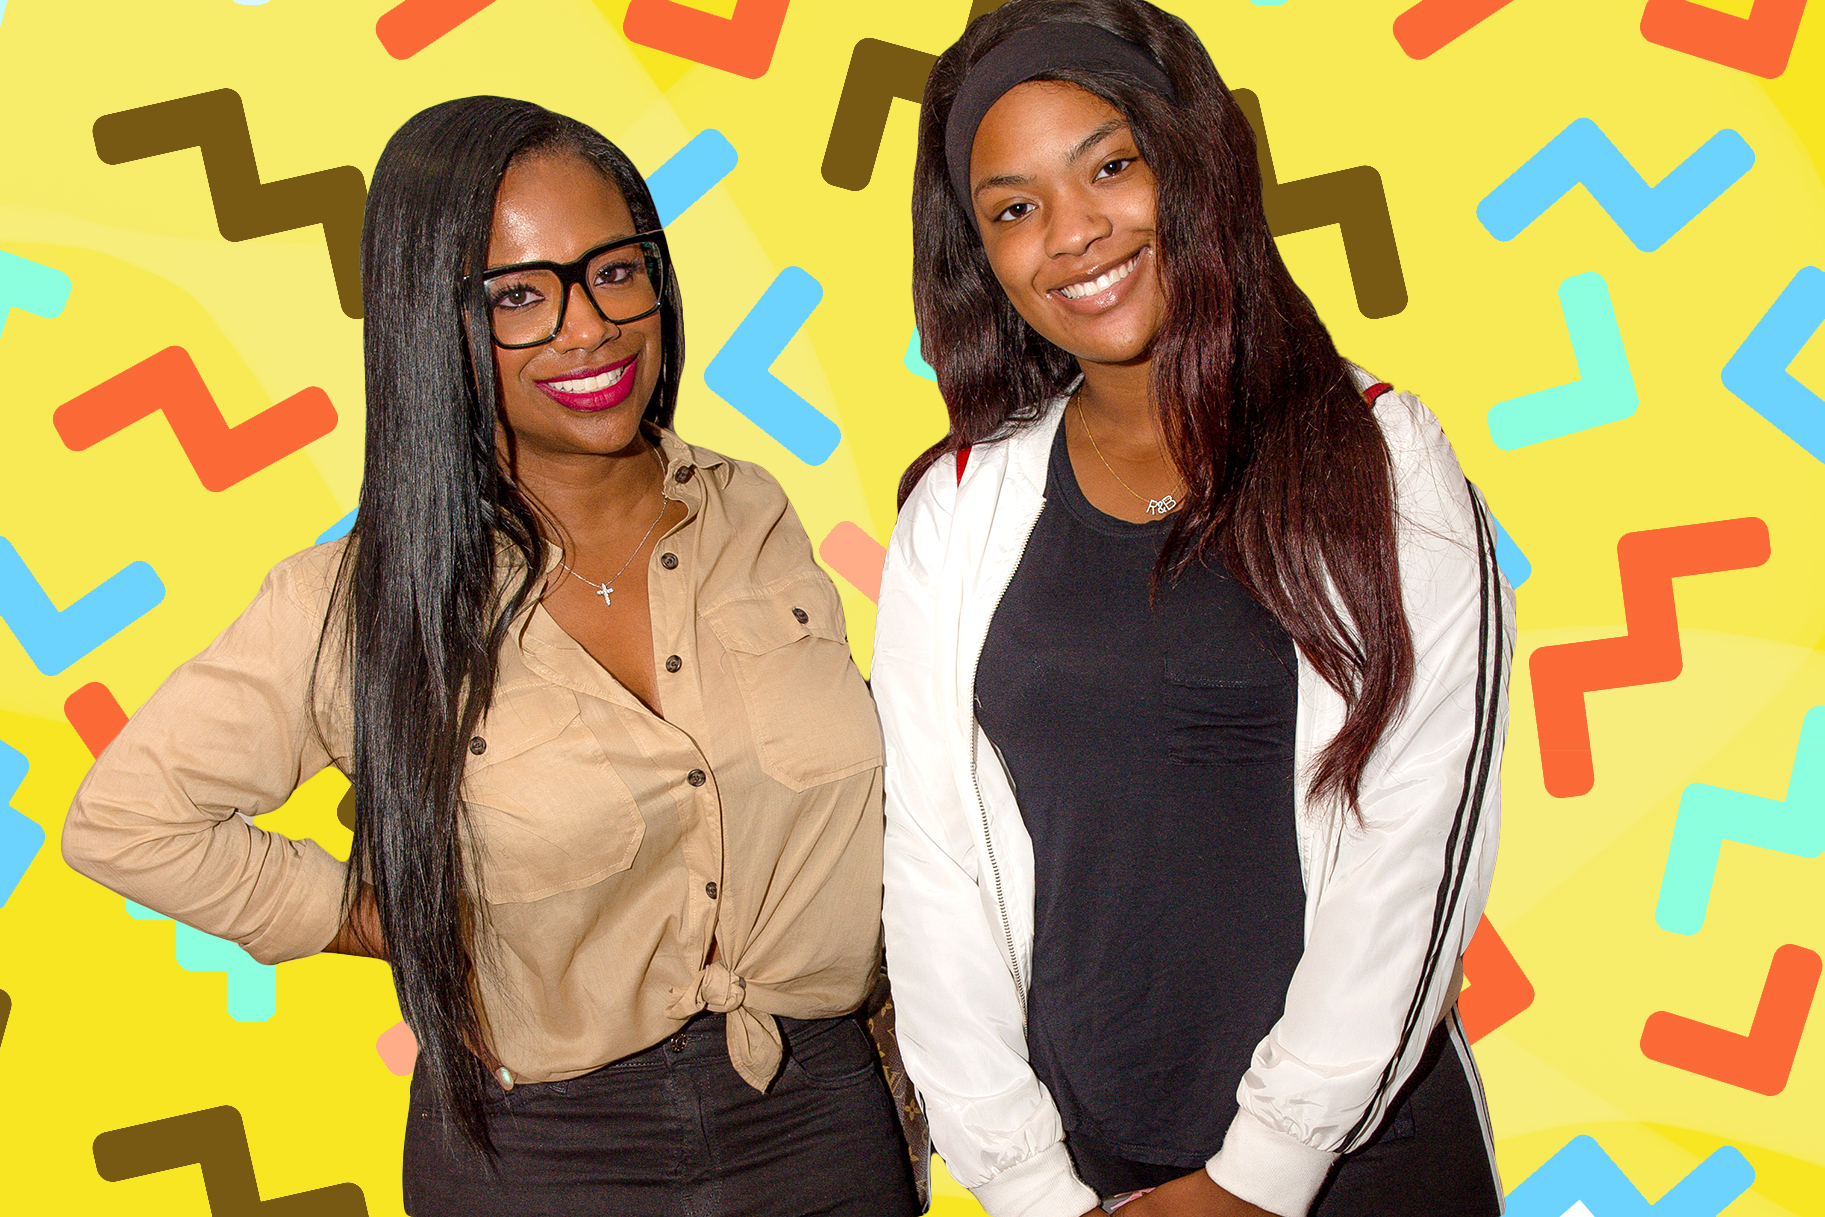 Kandi Burruss Has A Mother-Daughter Q&A WIth Riley Burruss And Fans See A 'Kandi Burruss Show Coming'